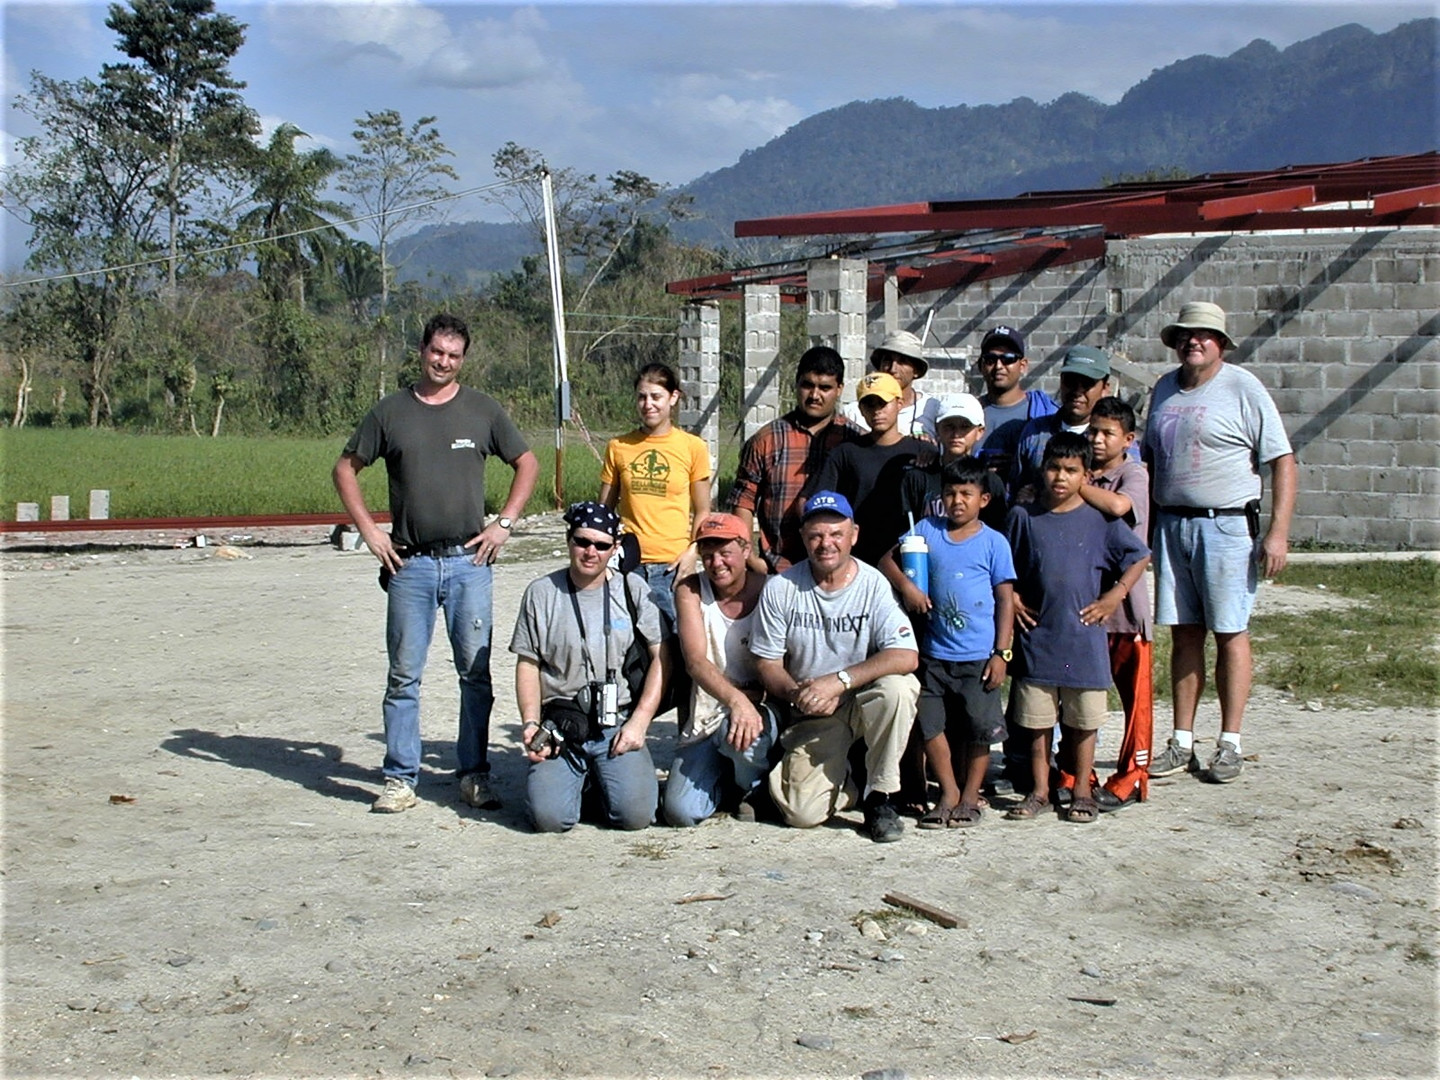 The boys living at the village and others who helped with the construction